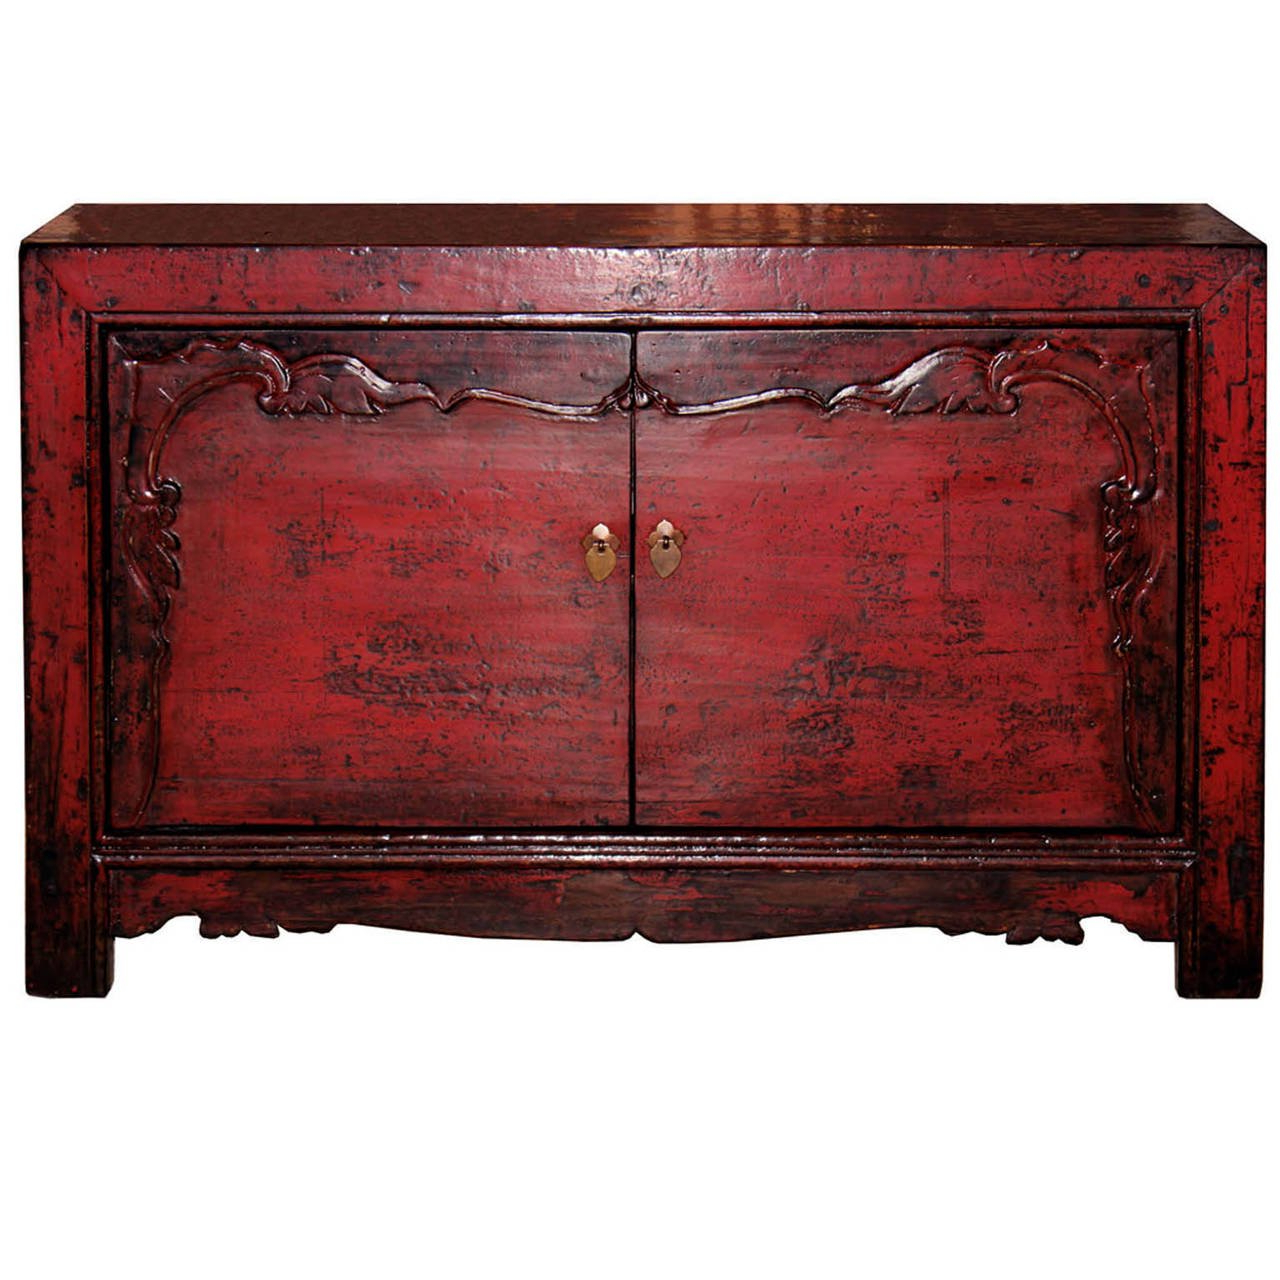 4 Door Dongbei Buffet At 1Stdibs For Most Current Rani 4 Door Sideboards (View 2 of 20)